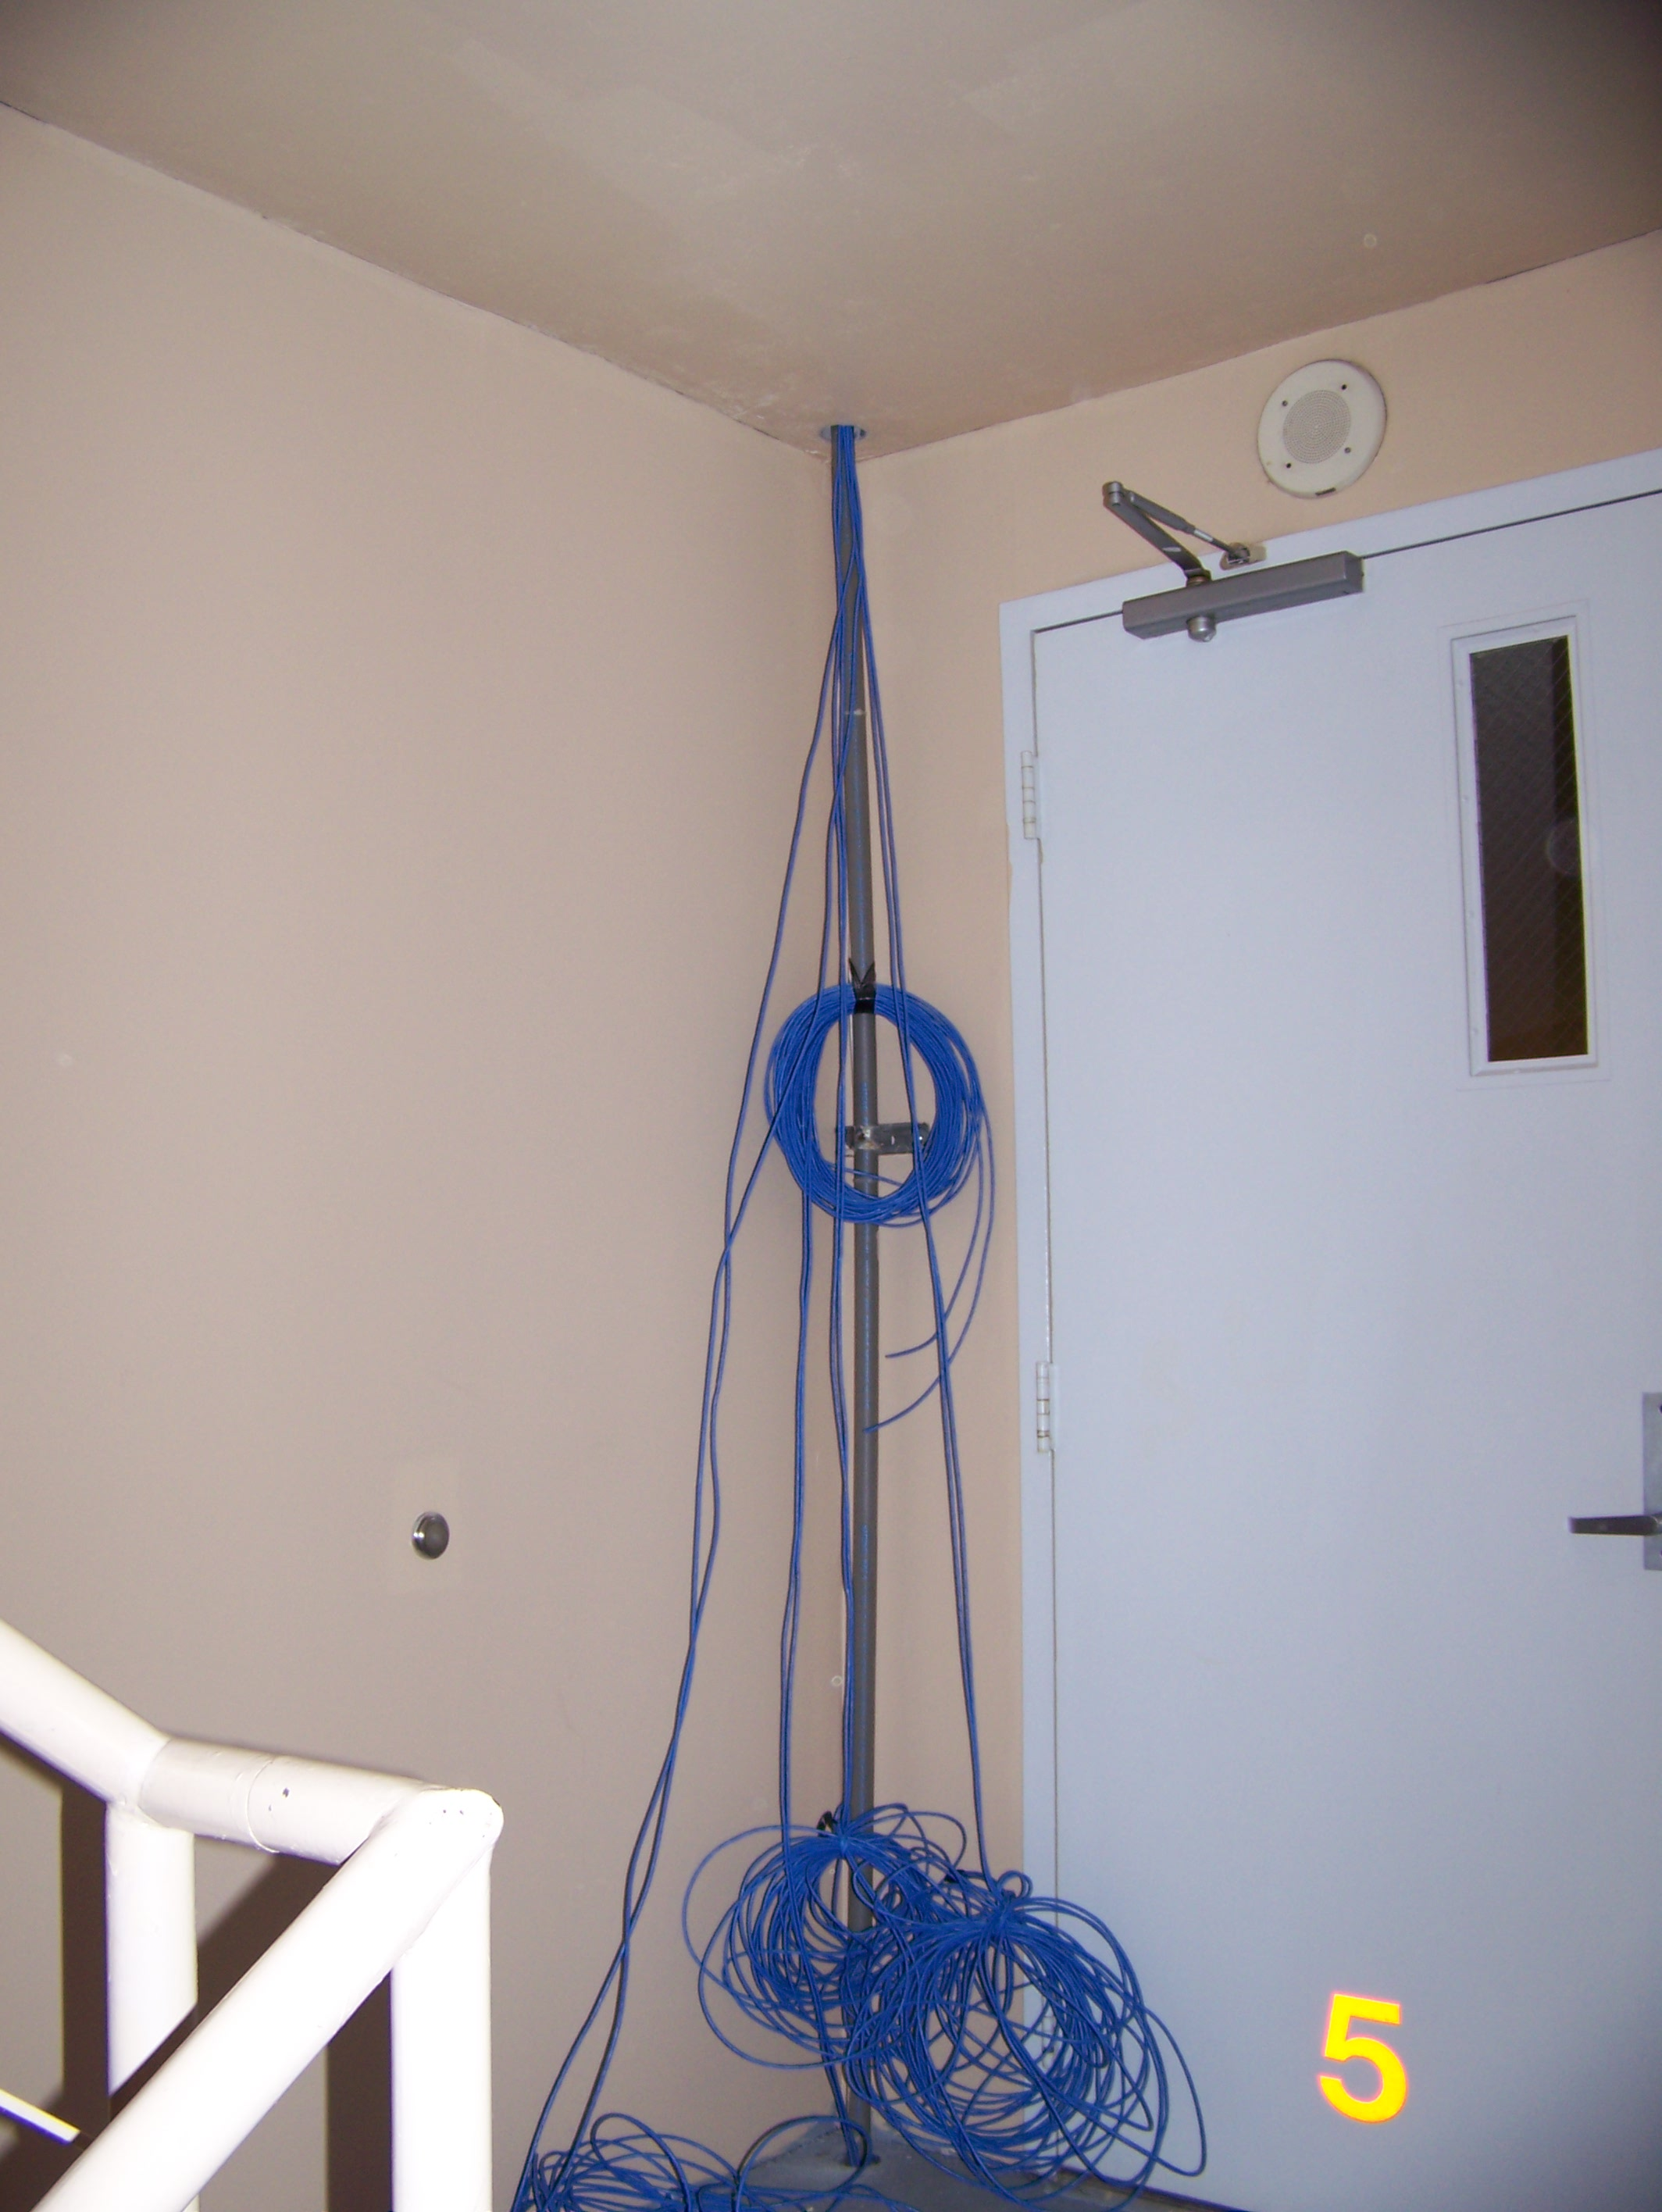 Embassy suites cabling guys for Install consul